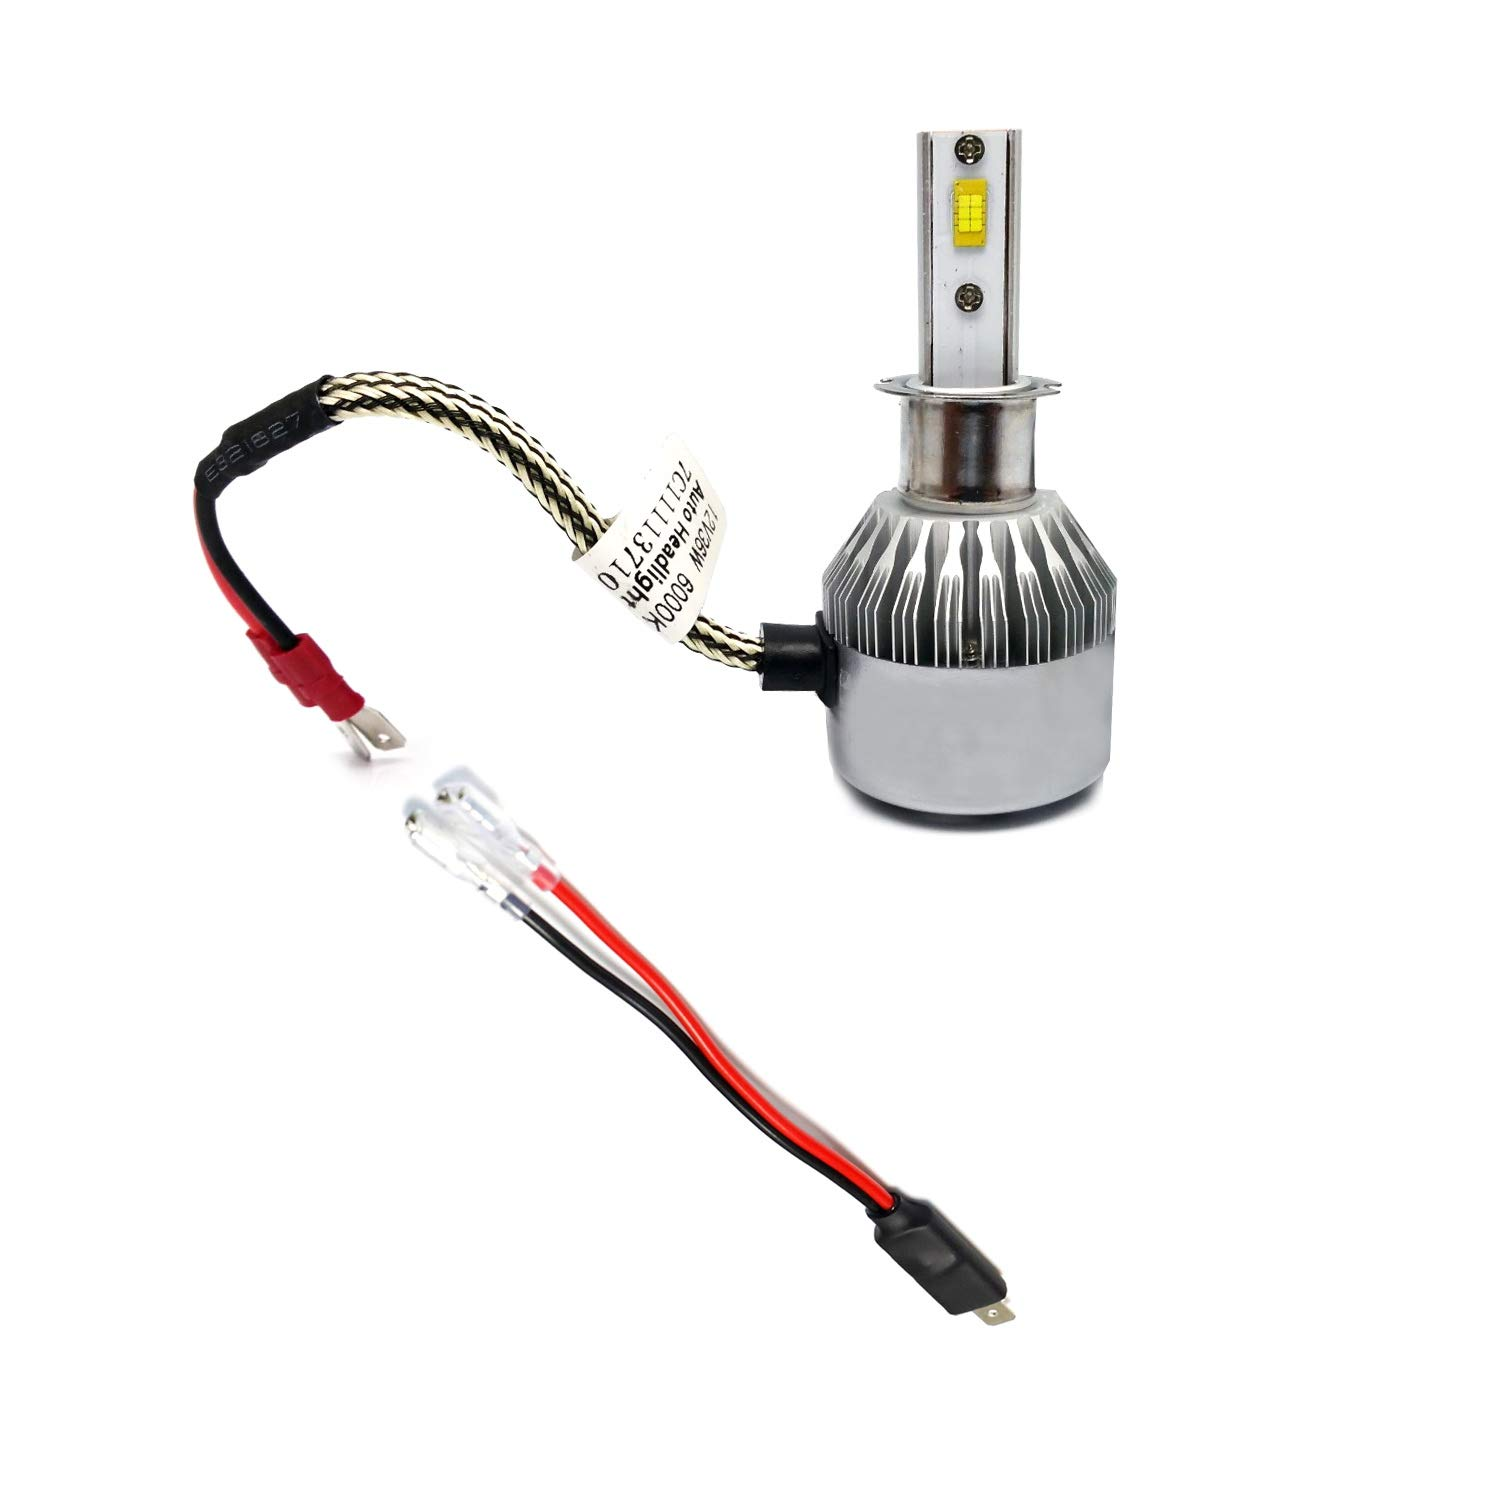 iJDMTOY (2) OEM H1 Socket/Adapter Wires For HID or LED Headlight Bulbs on